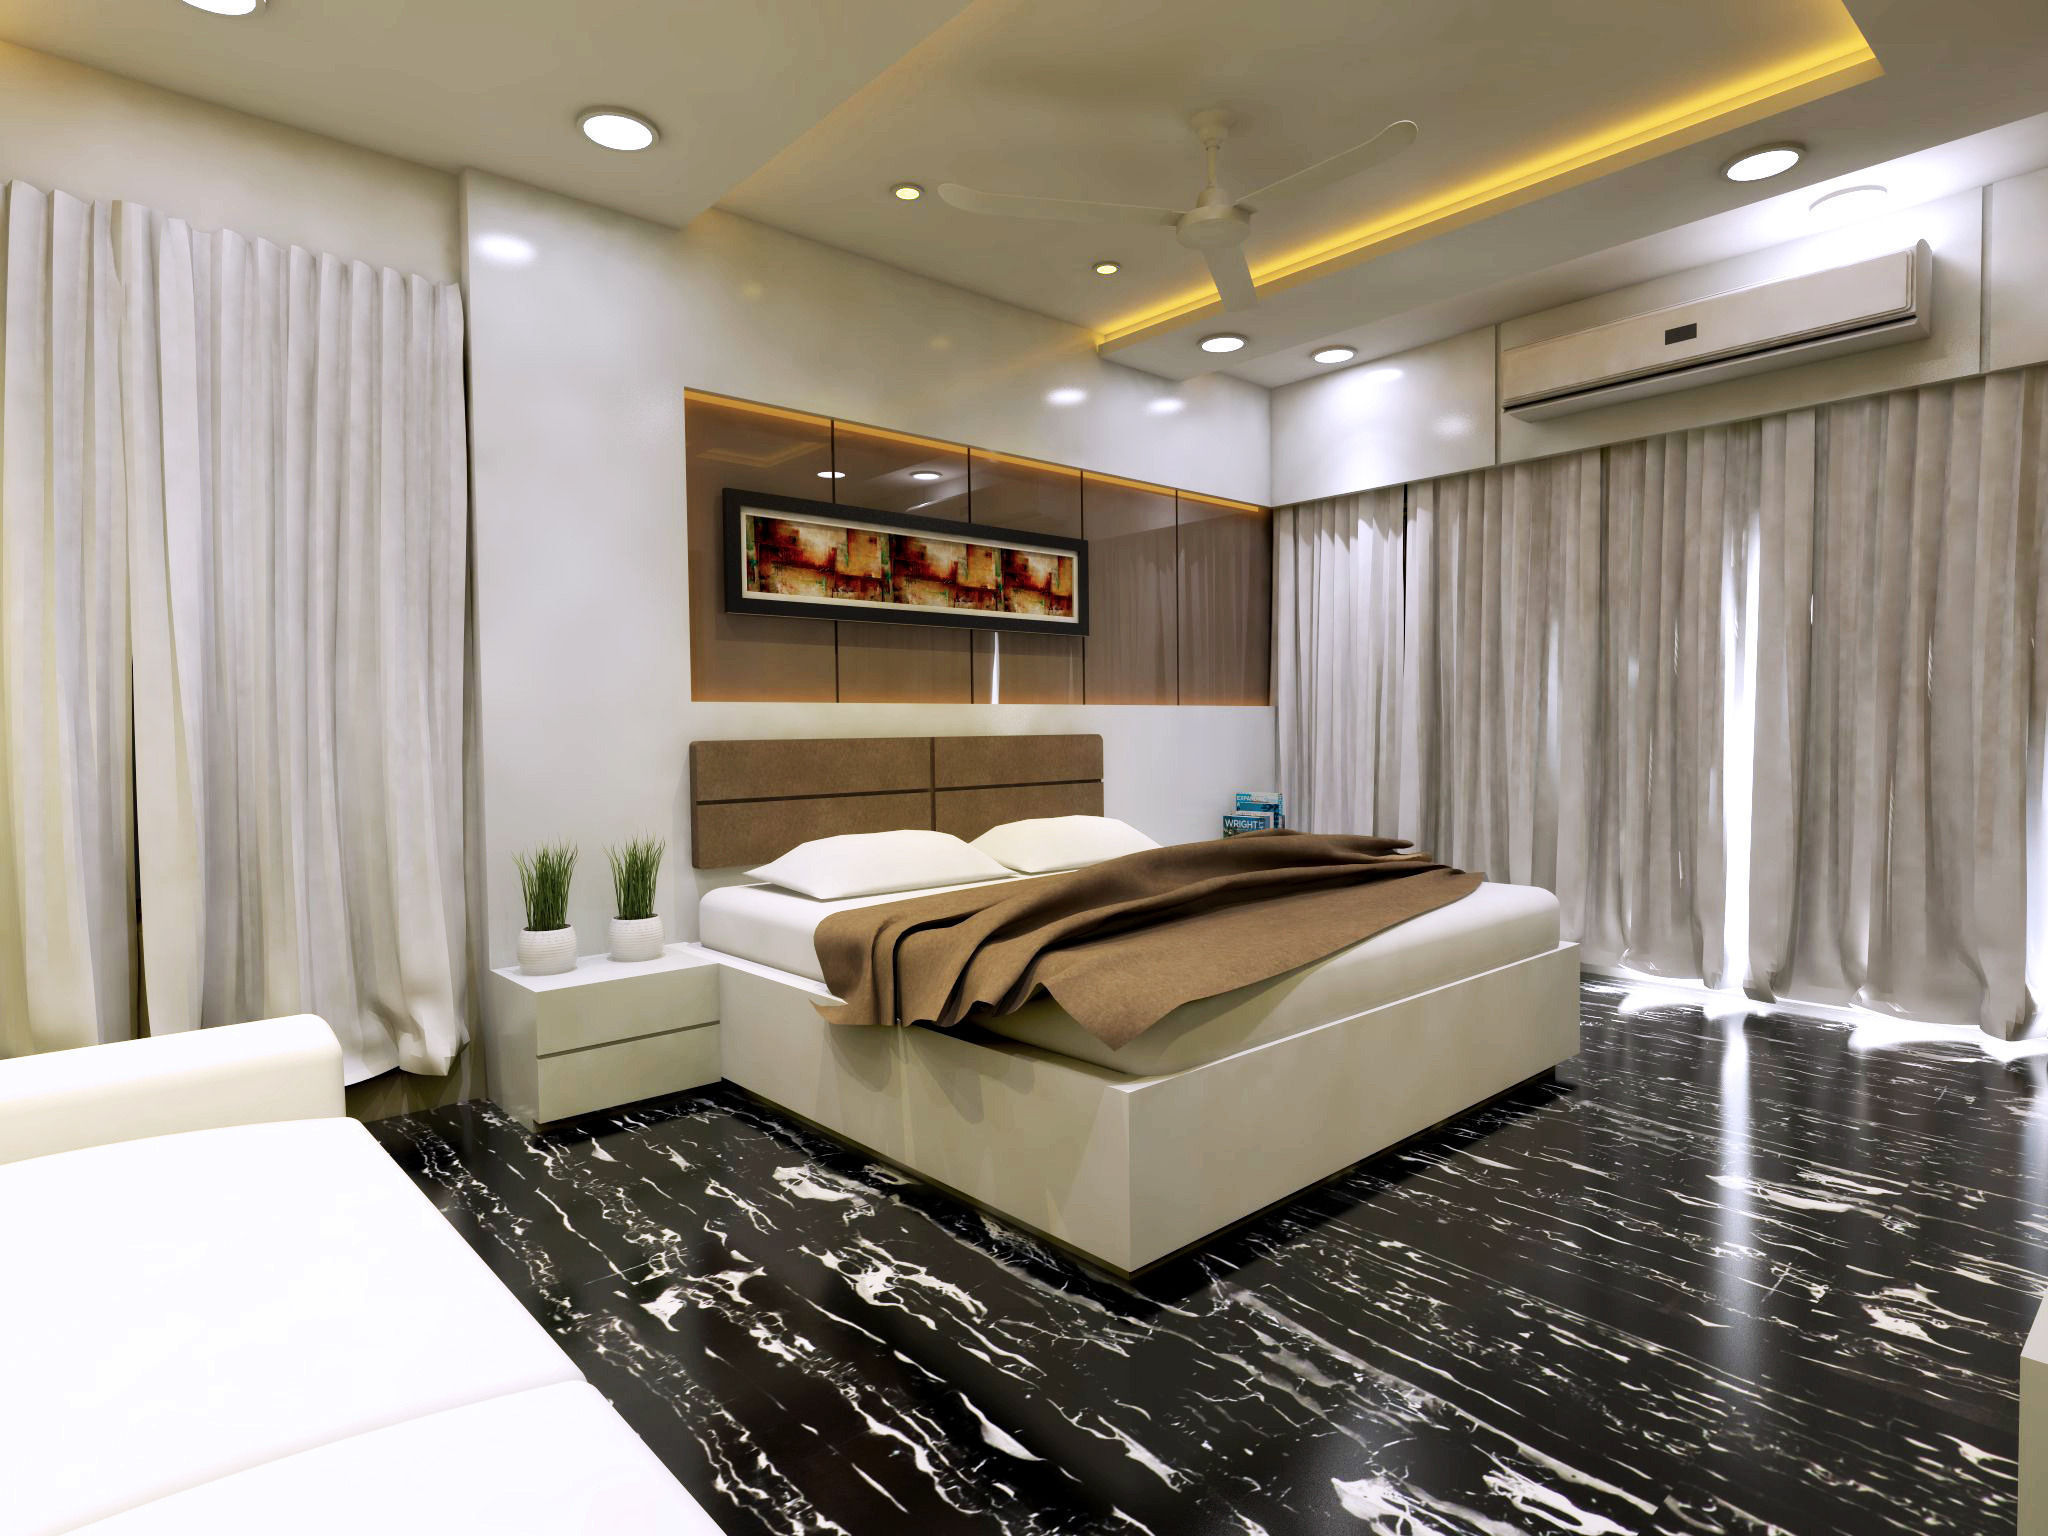 Modern bedroom interior vray rendered 3d model skp - Model designer interiors ...